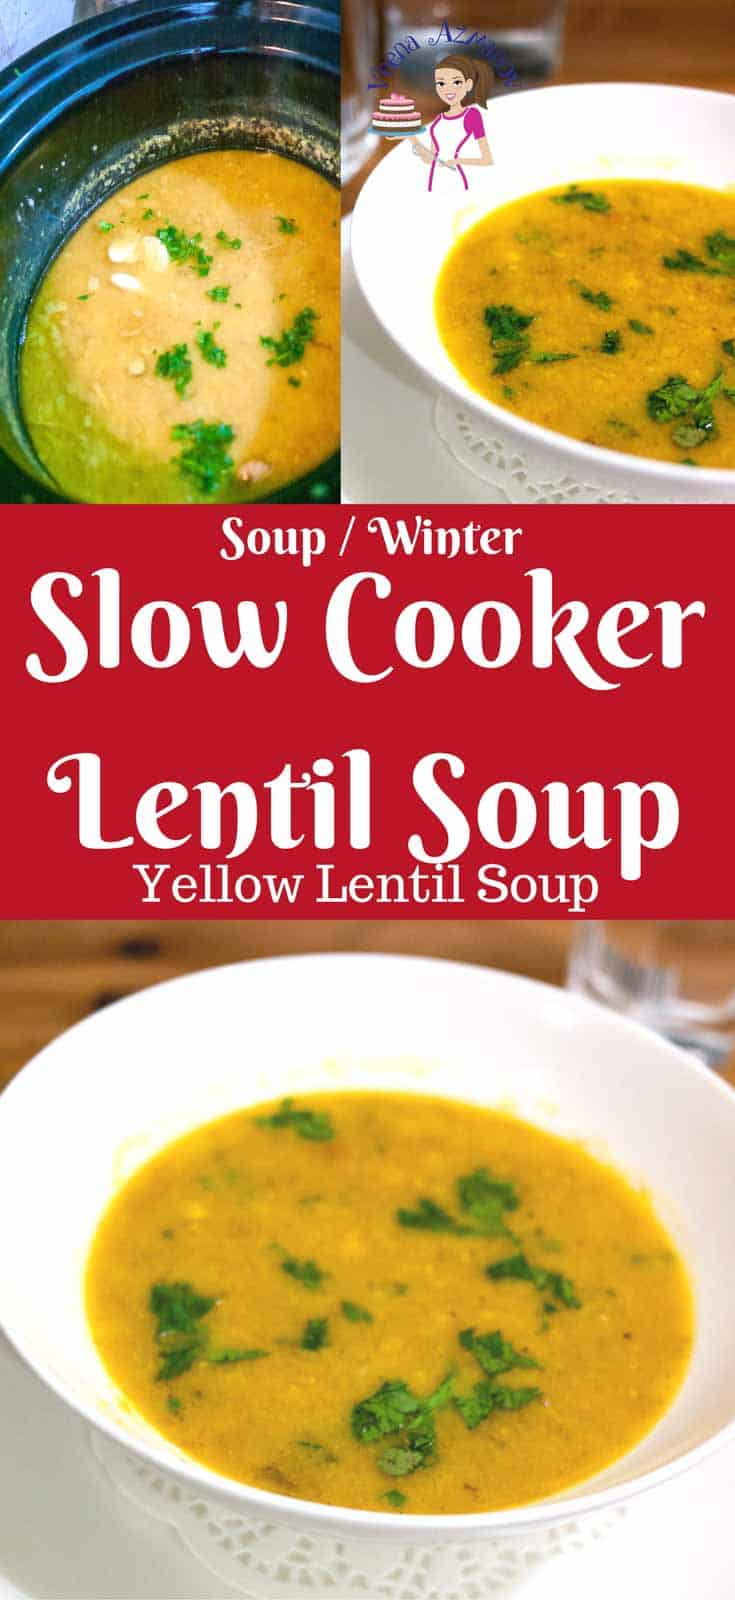 This slow cooker lentil soup is not just nutritious but hearty and flavorful. Serve it with crusty bread and a side salad for a simple week night dinner. The lentils are cooked until so soft you can barely see the grains. The fresh cilantro add so much more than just flavor. #lentil #soup #winter #comfortfood #soups #healthy #yellowlentil #souprecipes #cooking